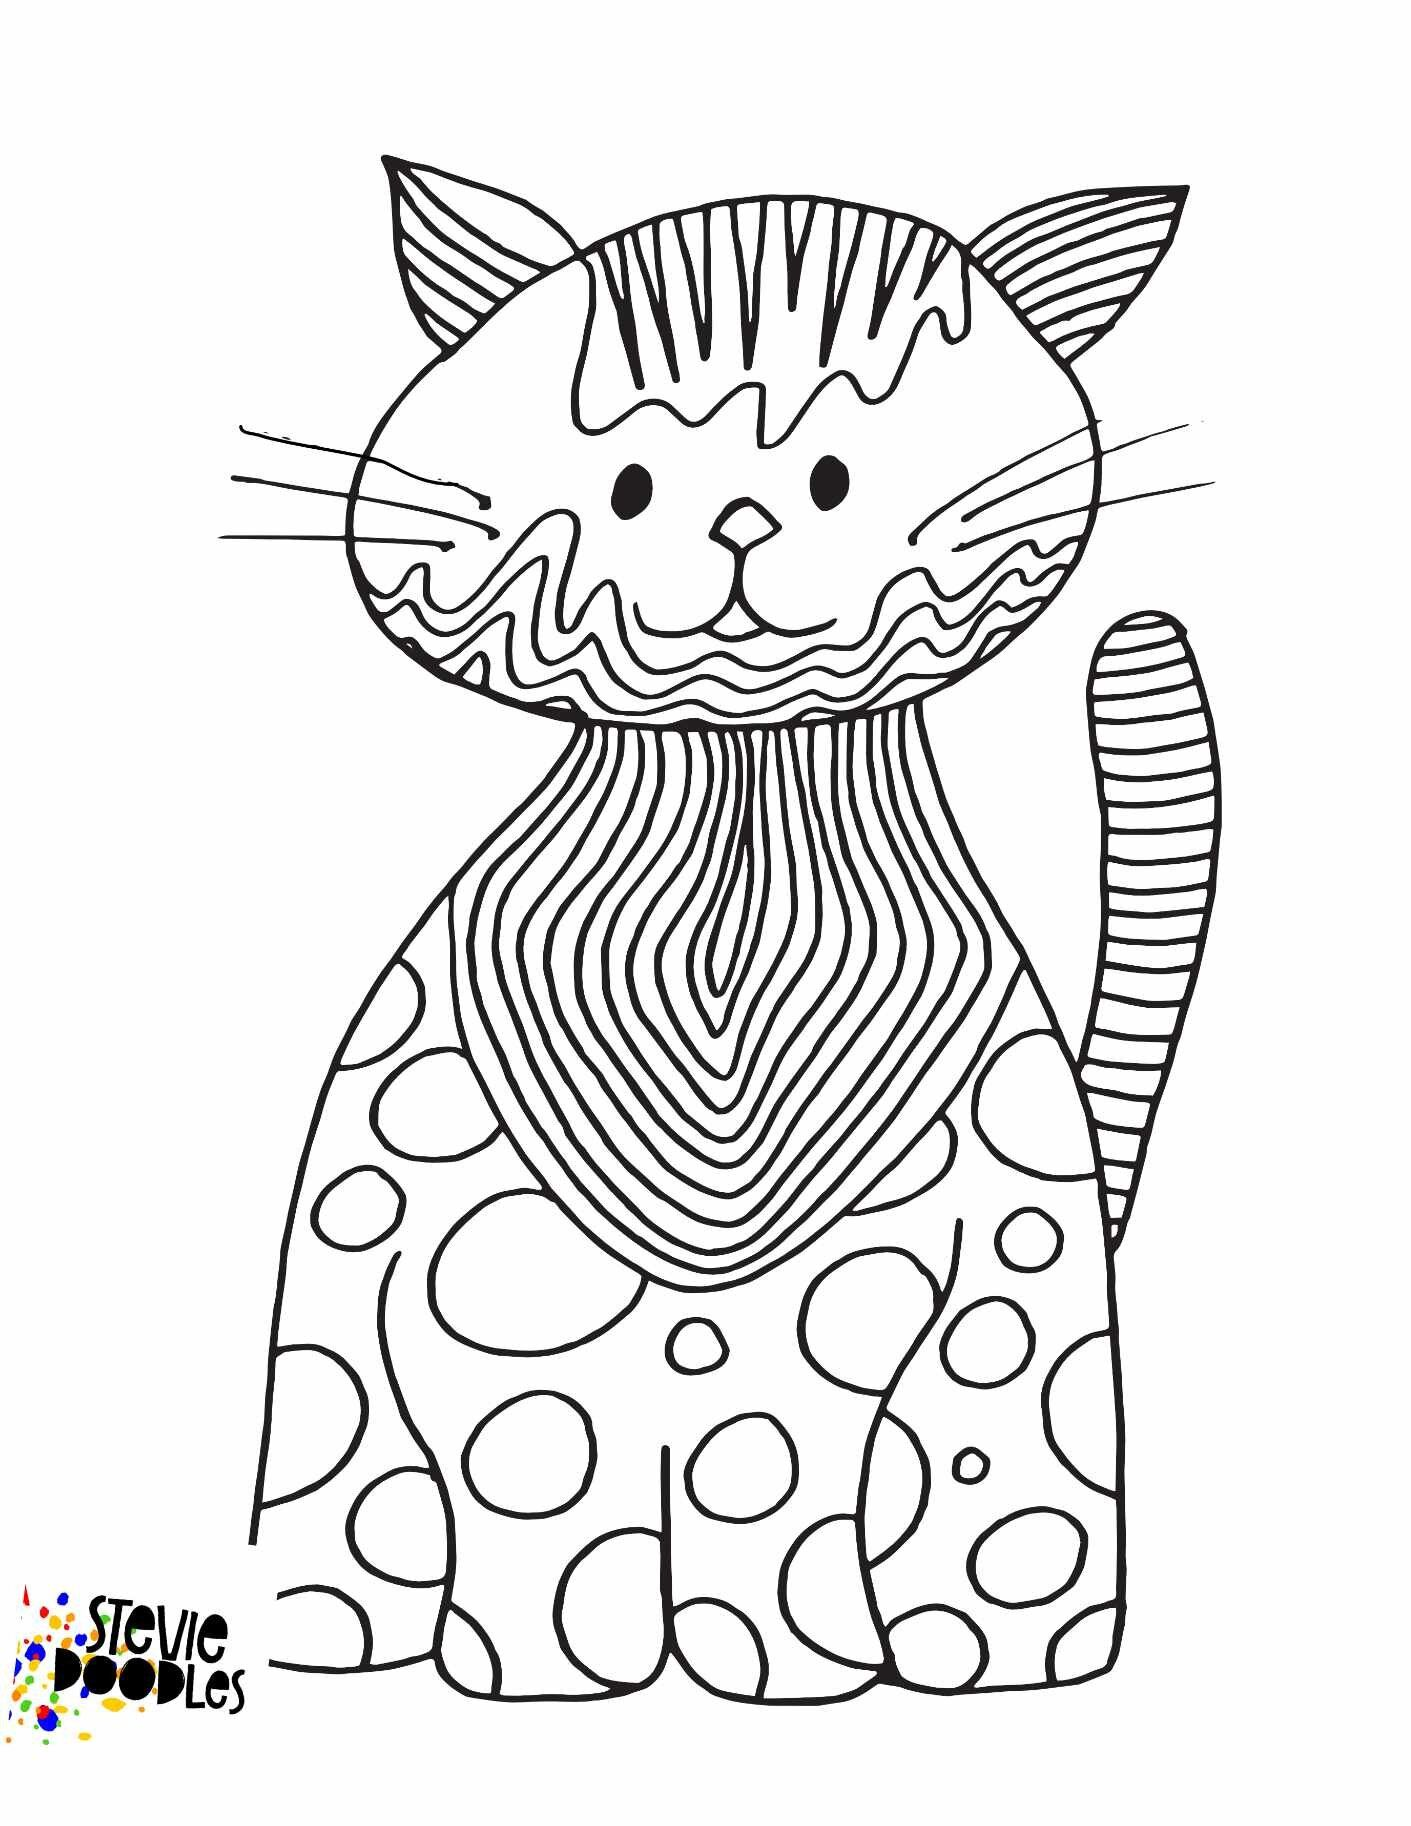 Free Cat Printable Coloring Page — Stevie Doodles in 2020